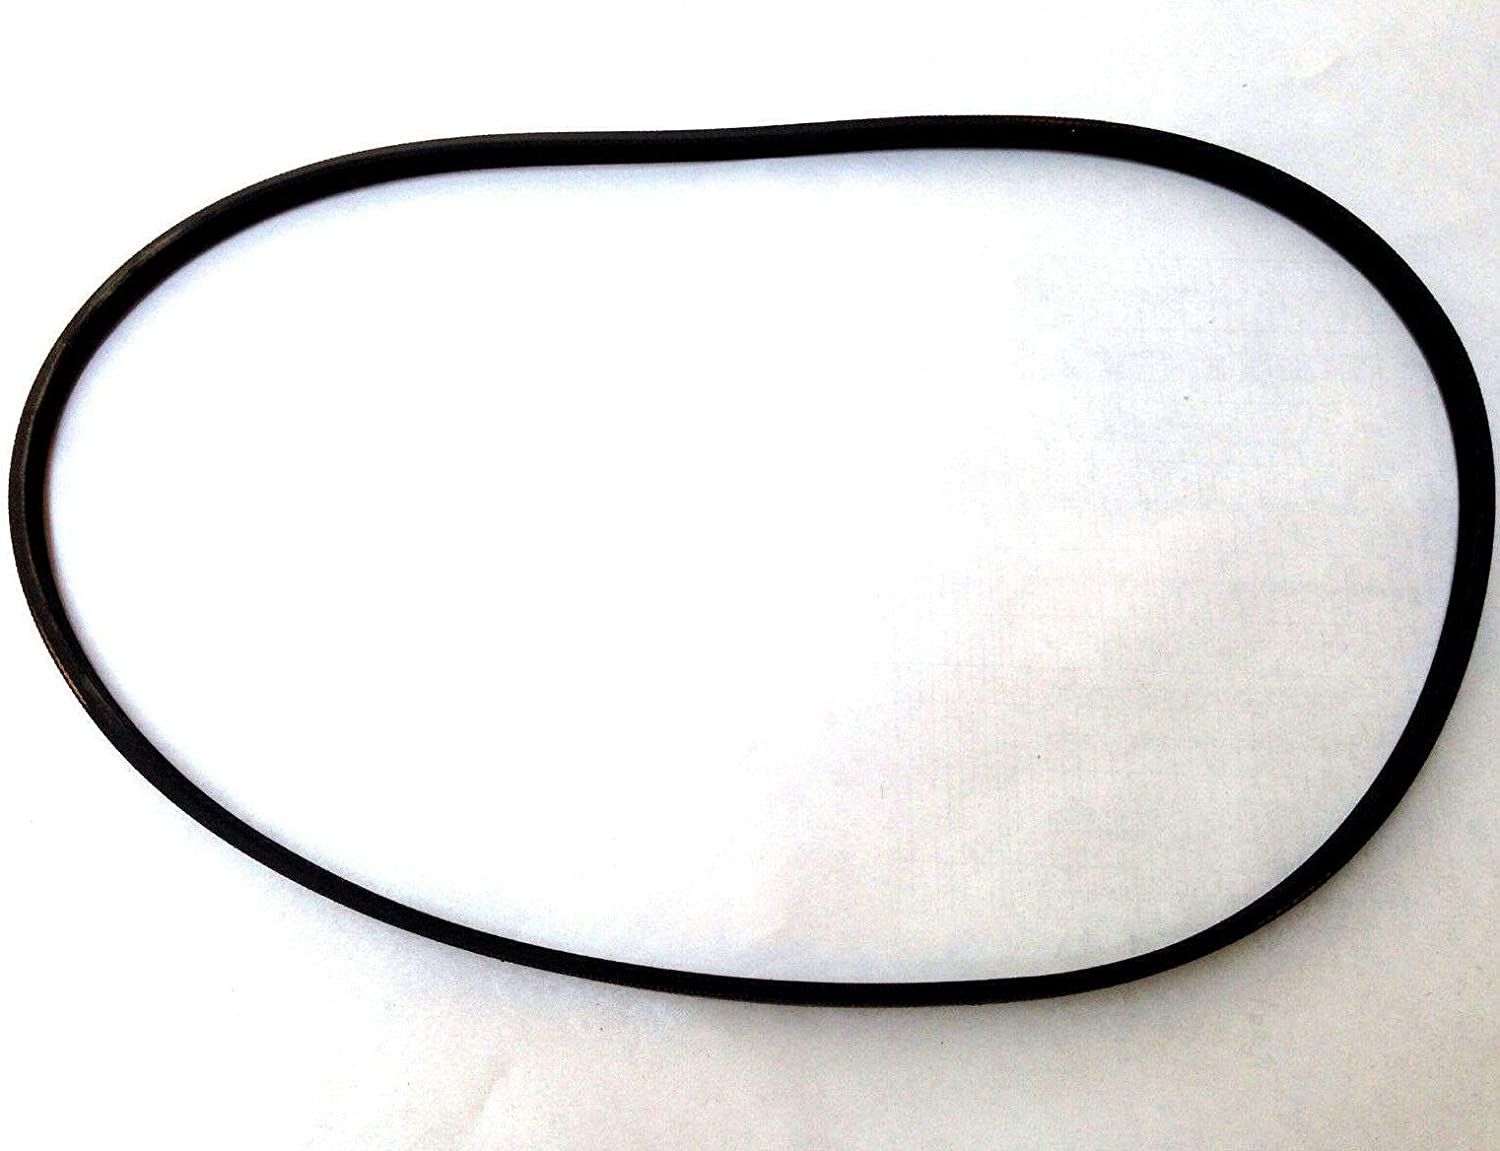 NEW Replacement Belt for SUNBEAM OSTER Bread Machine 4840 Model 4840 Style # BM-200